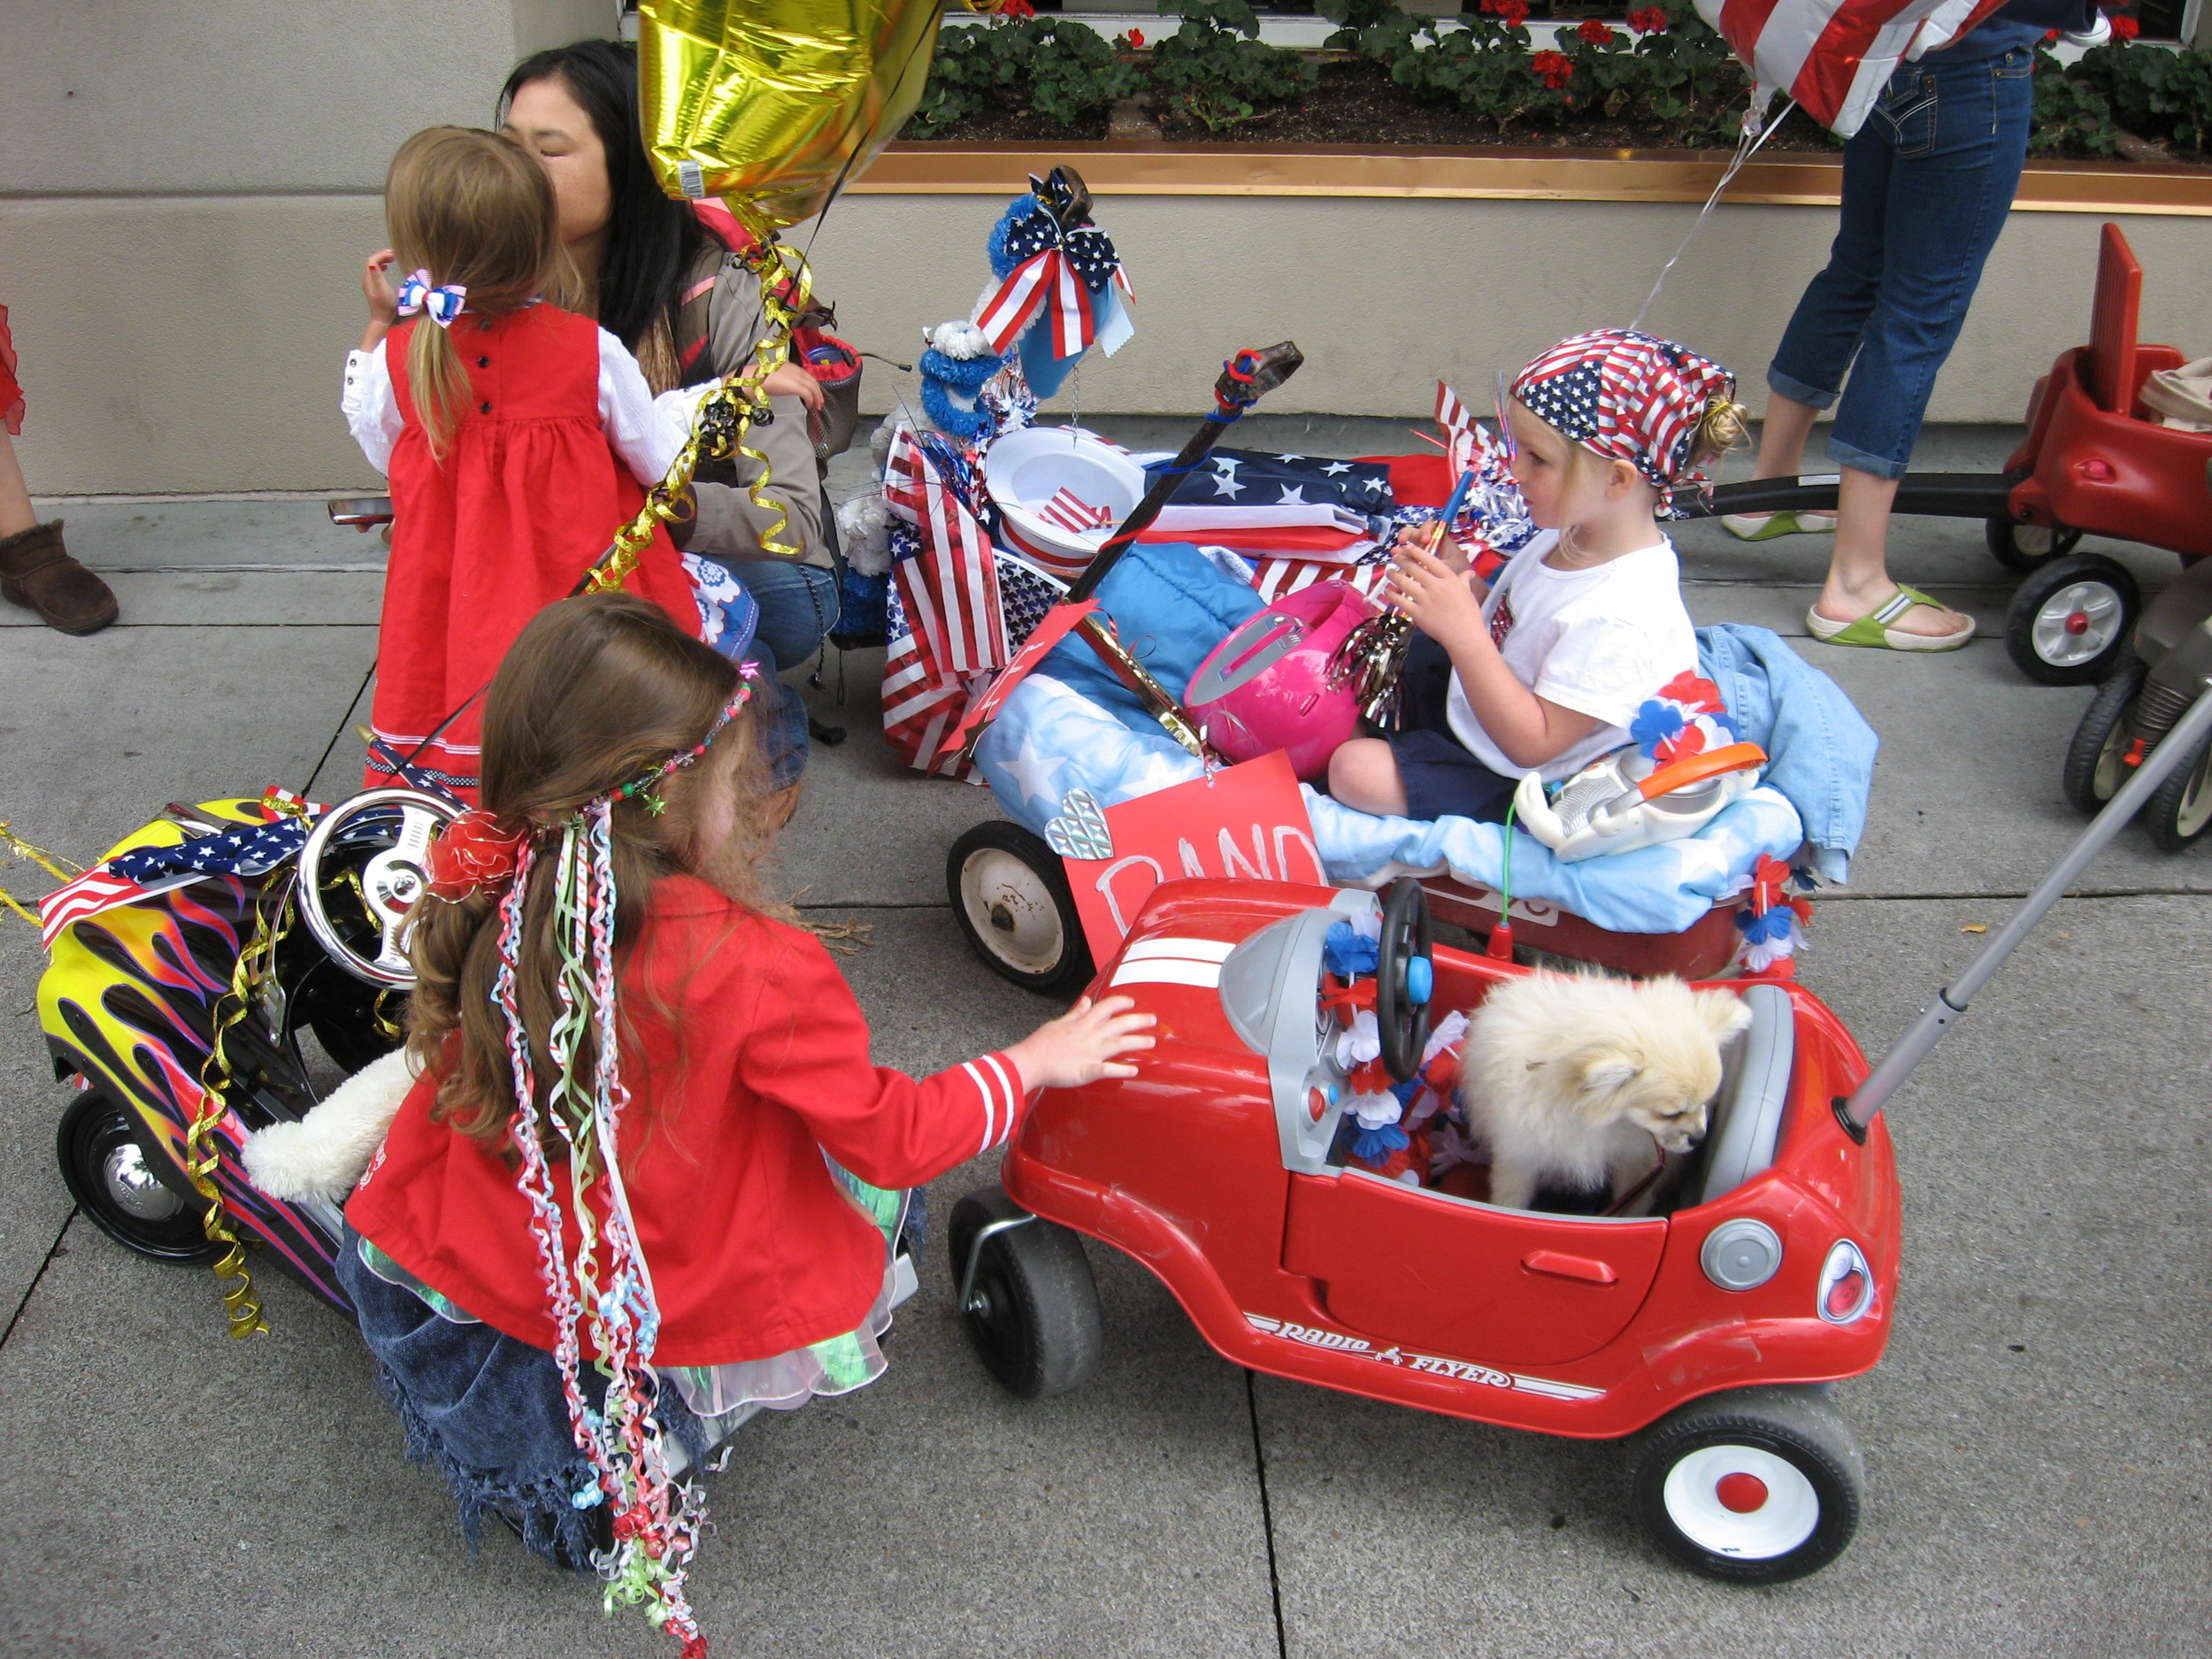 ecided to check out Main Street Coeur d'Alene while staying at the lakeside resort and lucked out as it was parade day.  Kids were having fun riding their bikes, push cars, walking dogs up Main Street.  It was very fun and colourful. We could never have planned this!